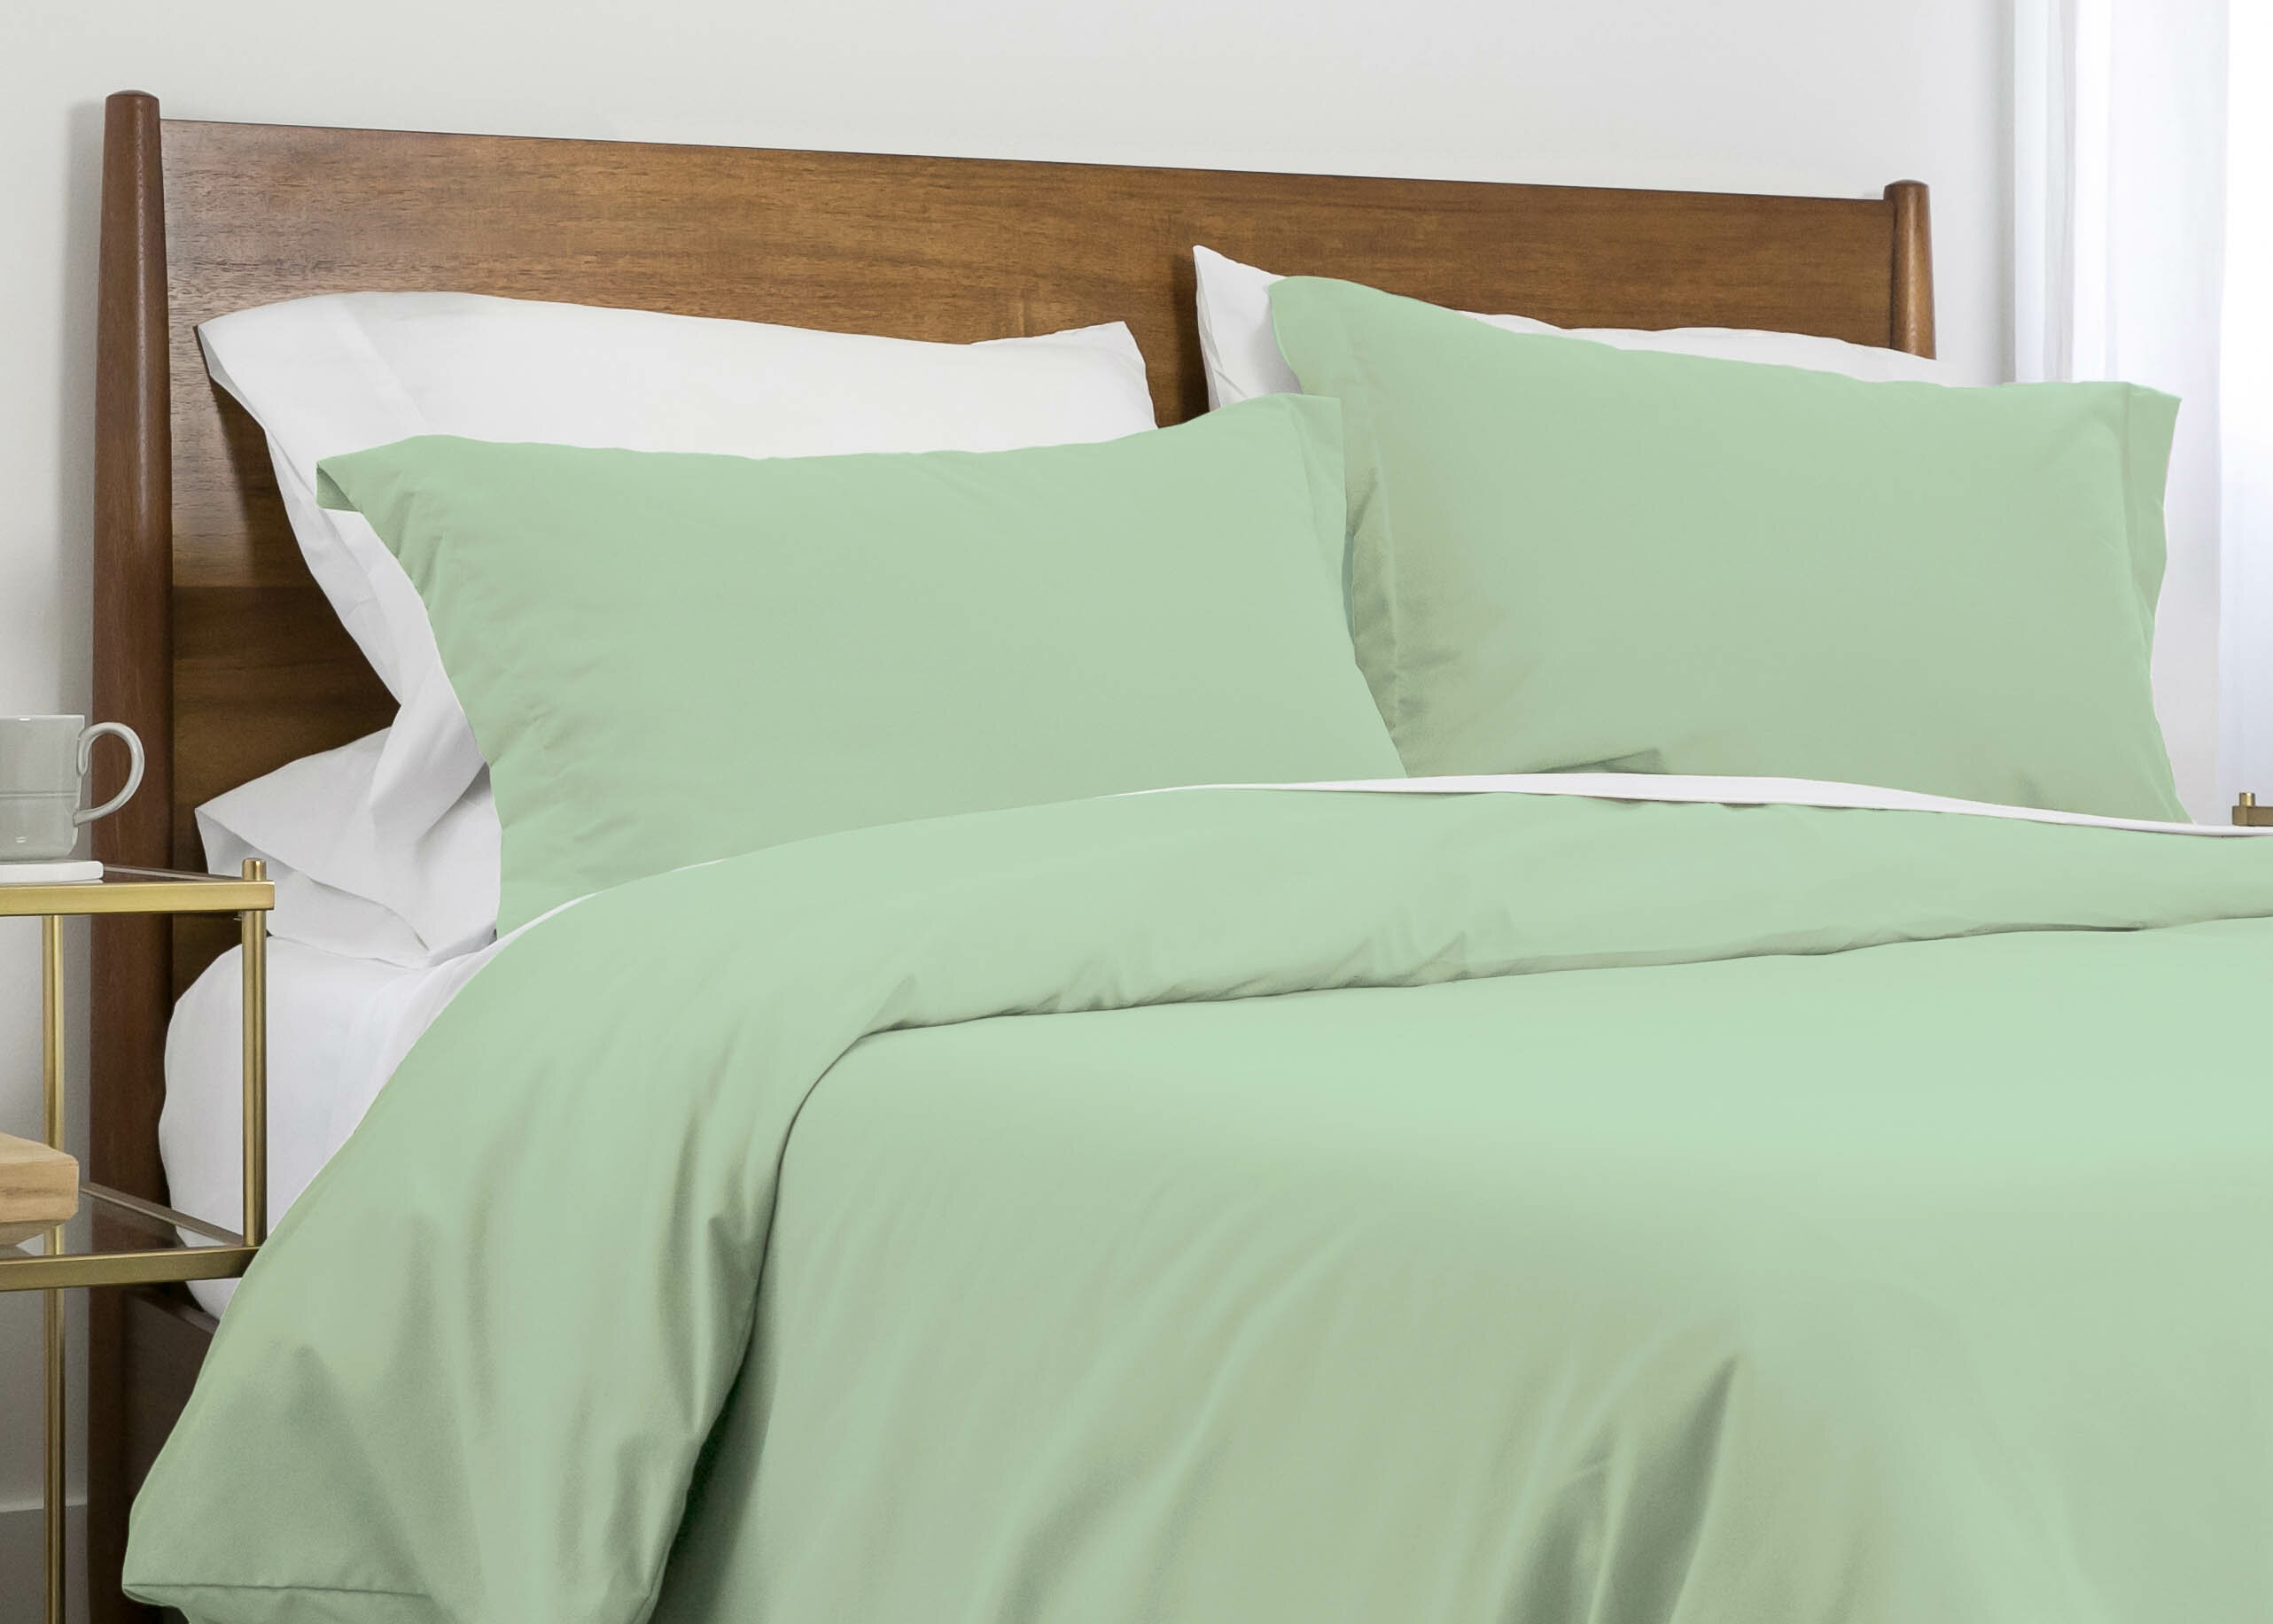 Green King Size Duvet Covers Sets You Ll Love In 2021 Wayfair